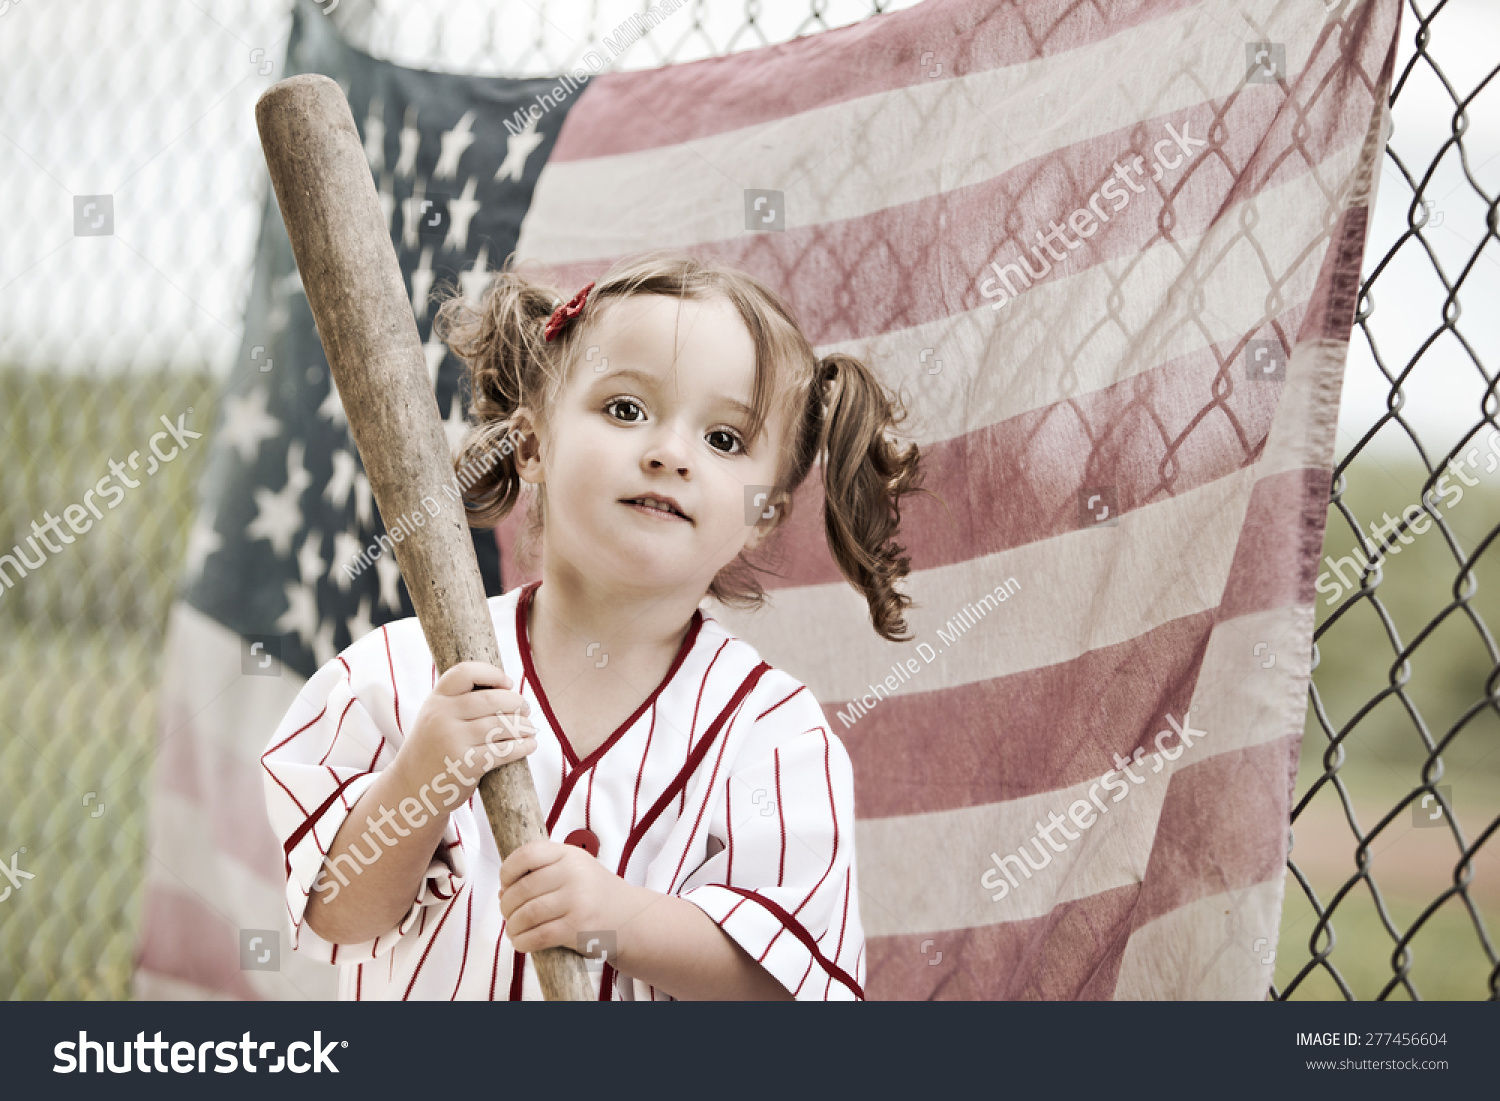 royalty free play ball adorable toddler wearing a u2026 277456604